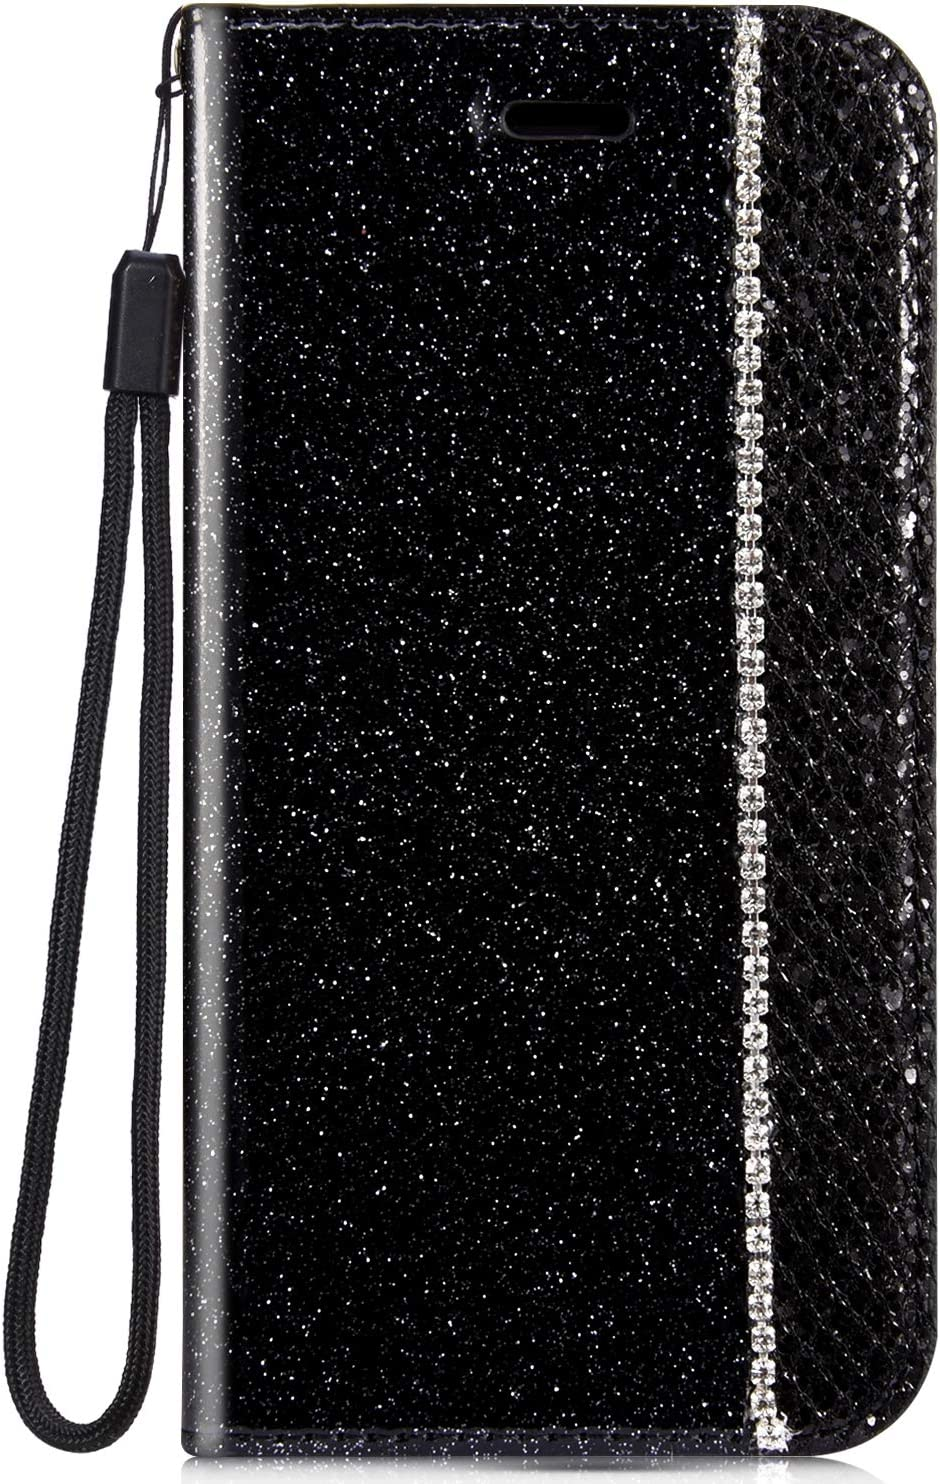 IKASEFU Shiny Rhinestone Diamond Sparkle Bling Glitter Luxury Wallet with Card Holder Flash chip Pu Leather Magnetic Flip Case Protective Cover Case Compatible with iPhone 7 Plus/8 Plus,Black